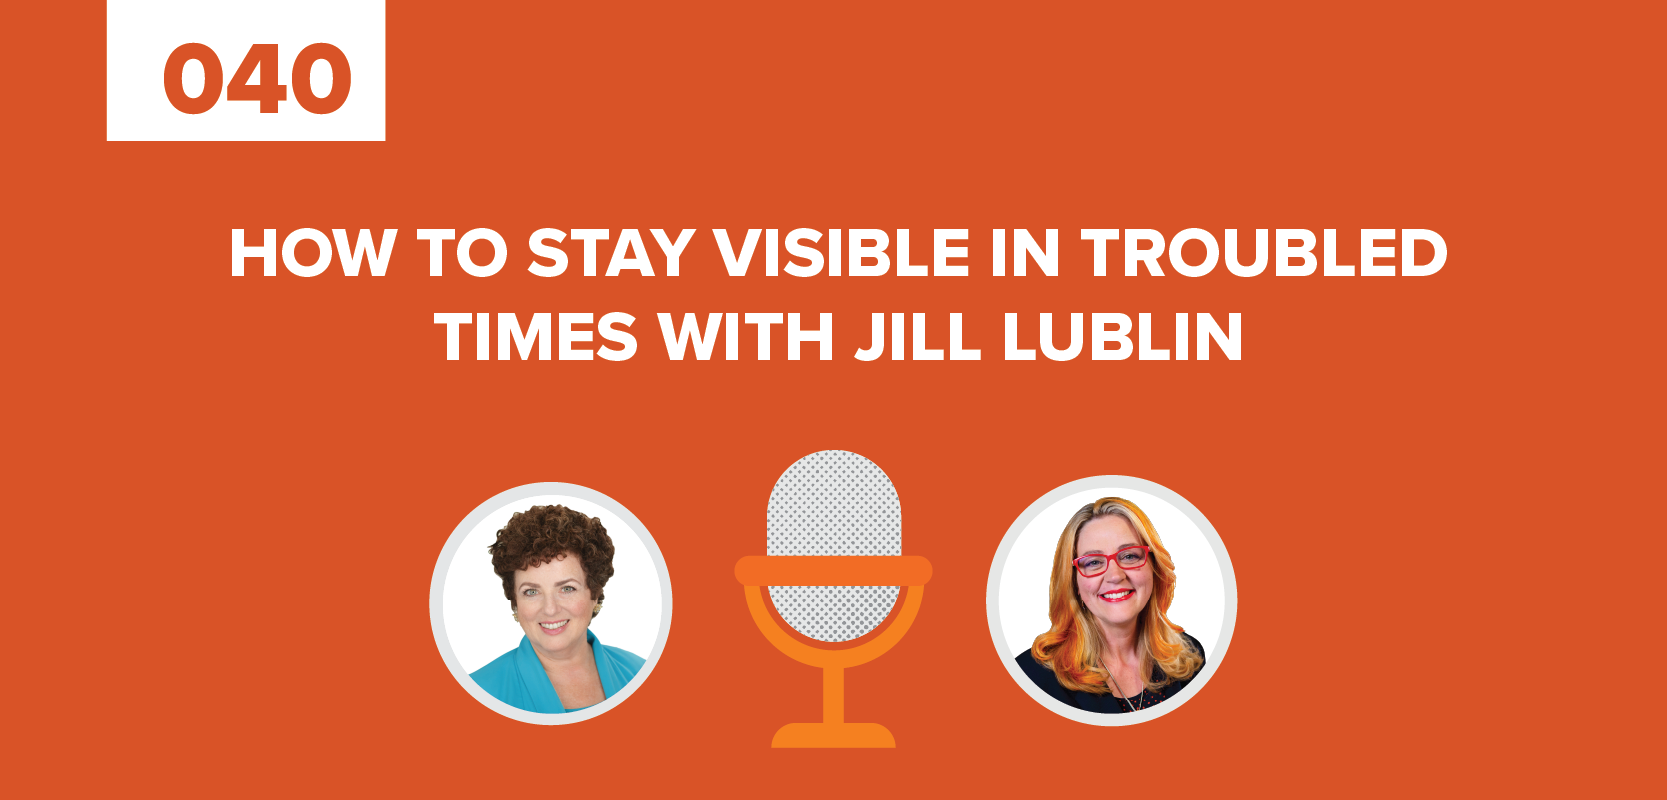 How to Stay Visible in Troubled Times with Jill Lublin Episode 40